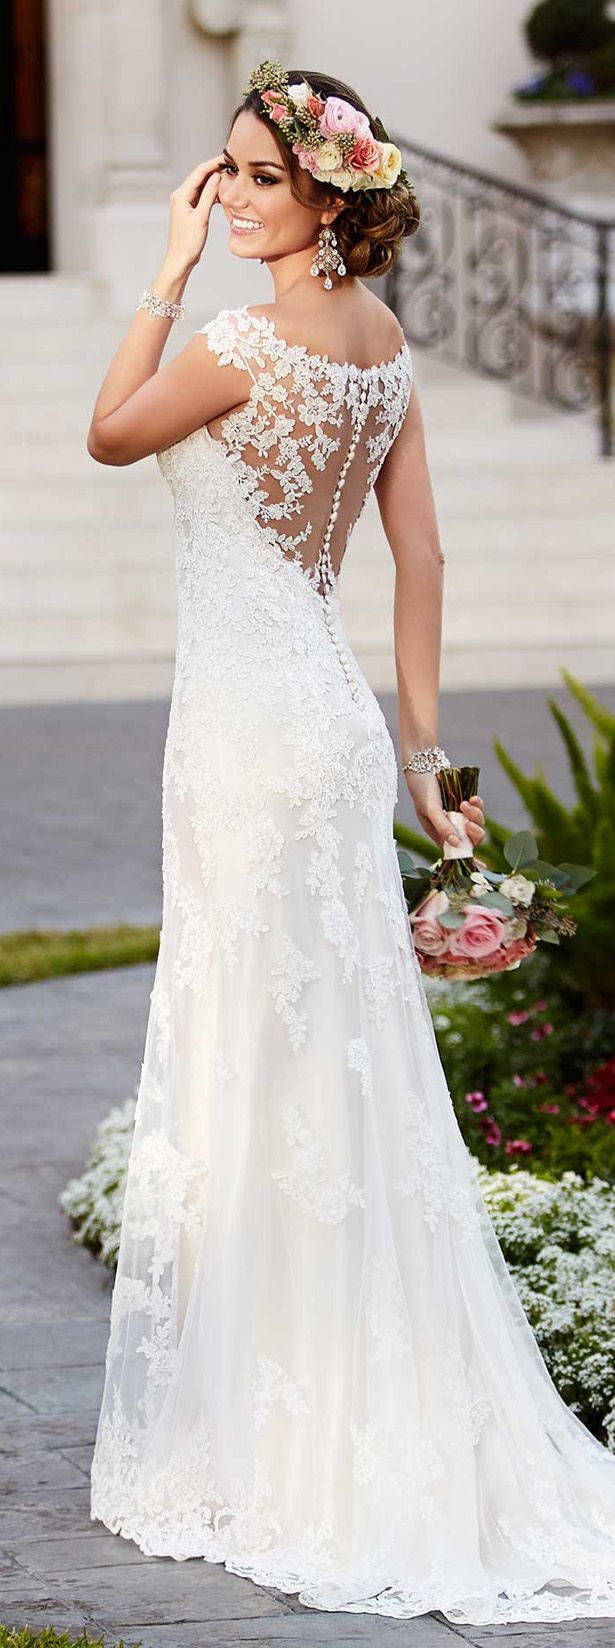 Wedding Dress by Stella York Spring 2016 #coupon code nicesup123 gets 25% off at  Provestra.com Skinception.com